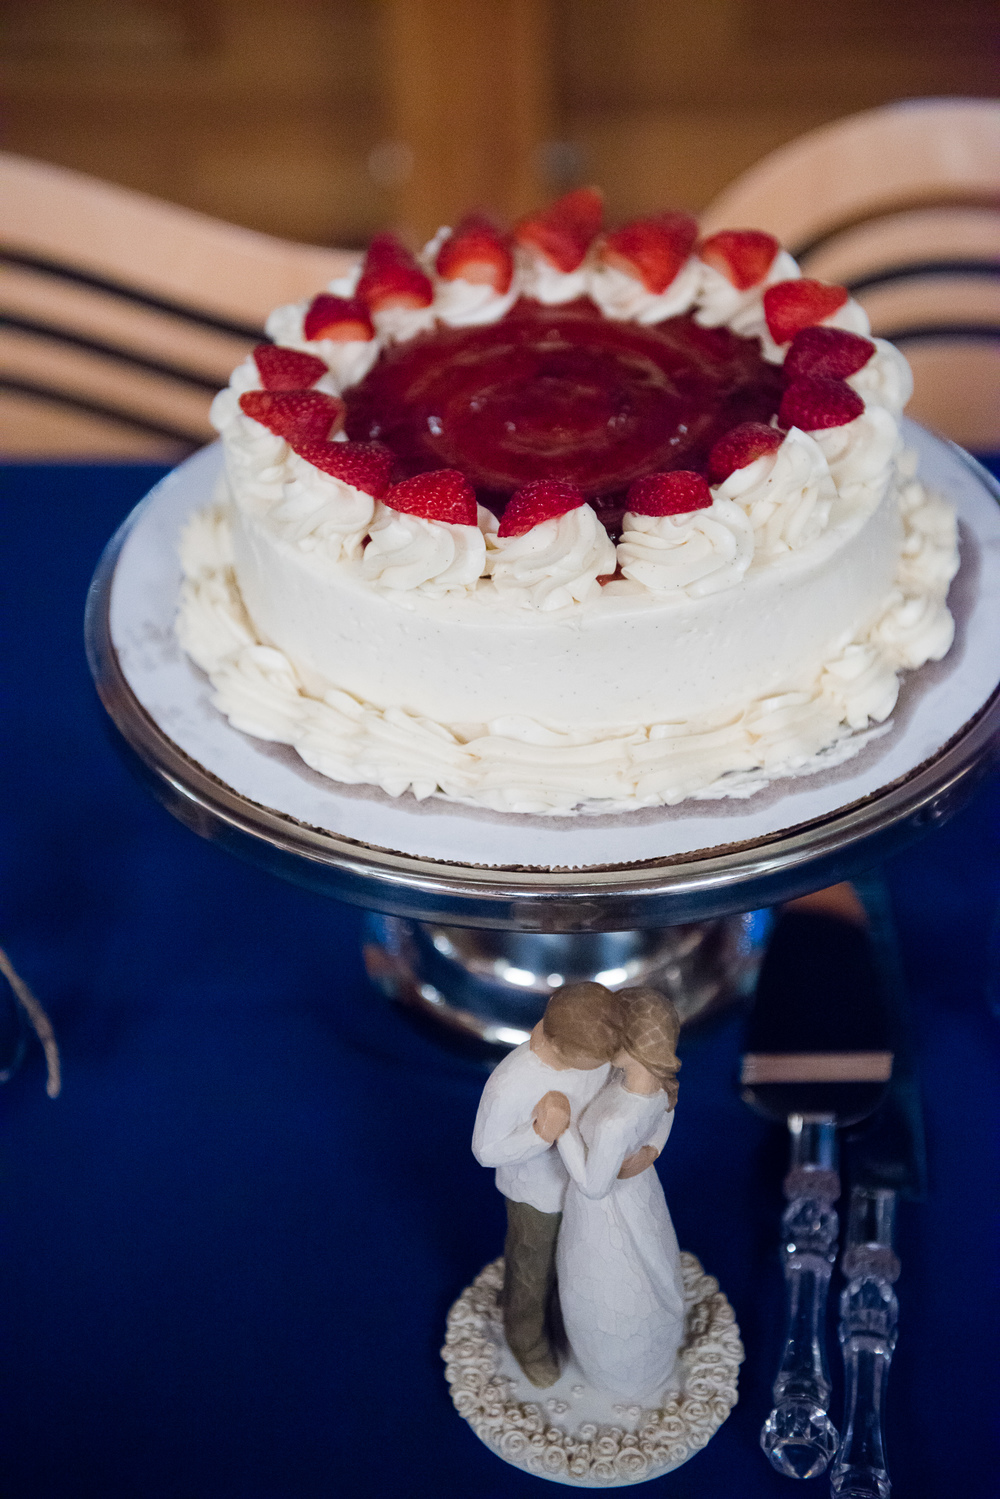 The Couple's Strawberry Vanilla Wedding Cake